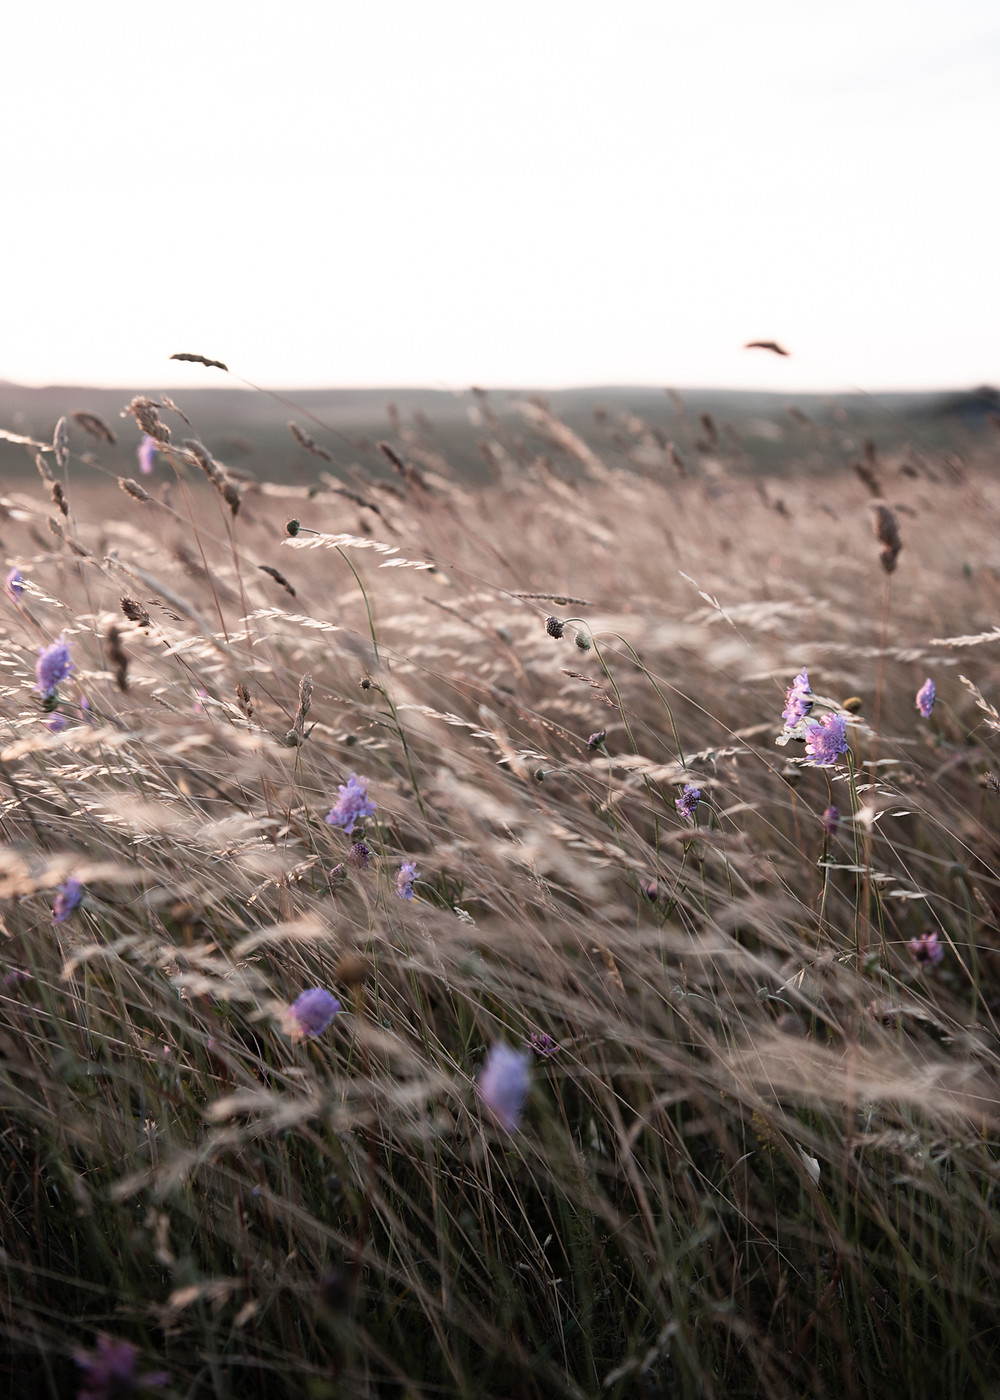 photographing wild flowers